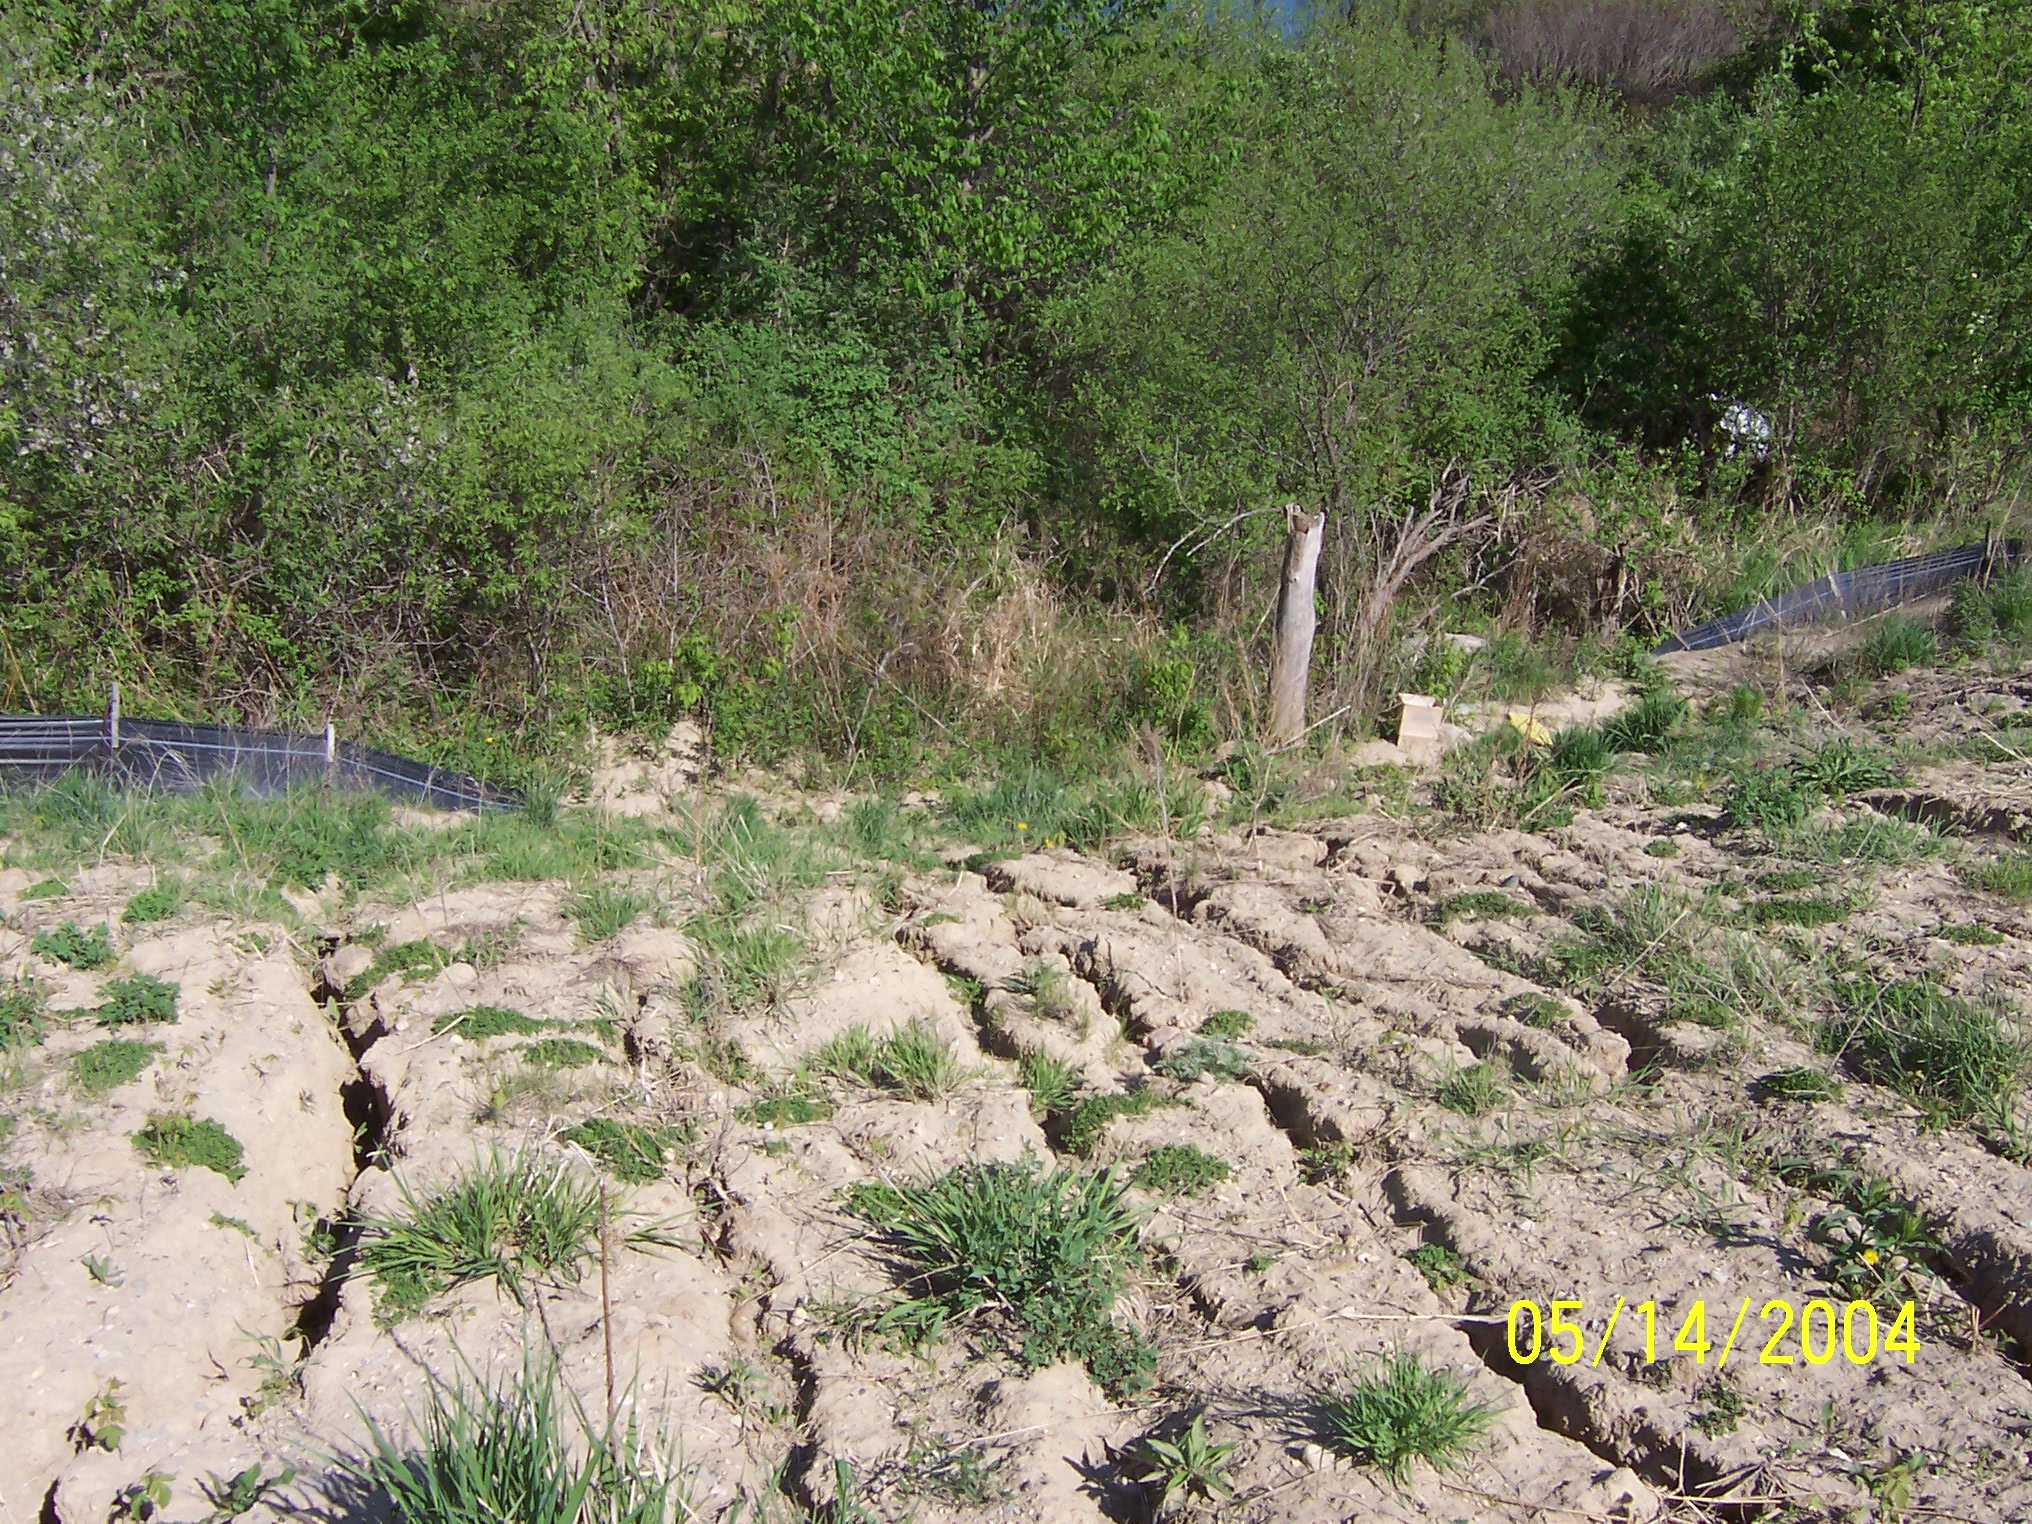 erosion prevention practices - temporary seeding and stabilization